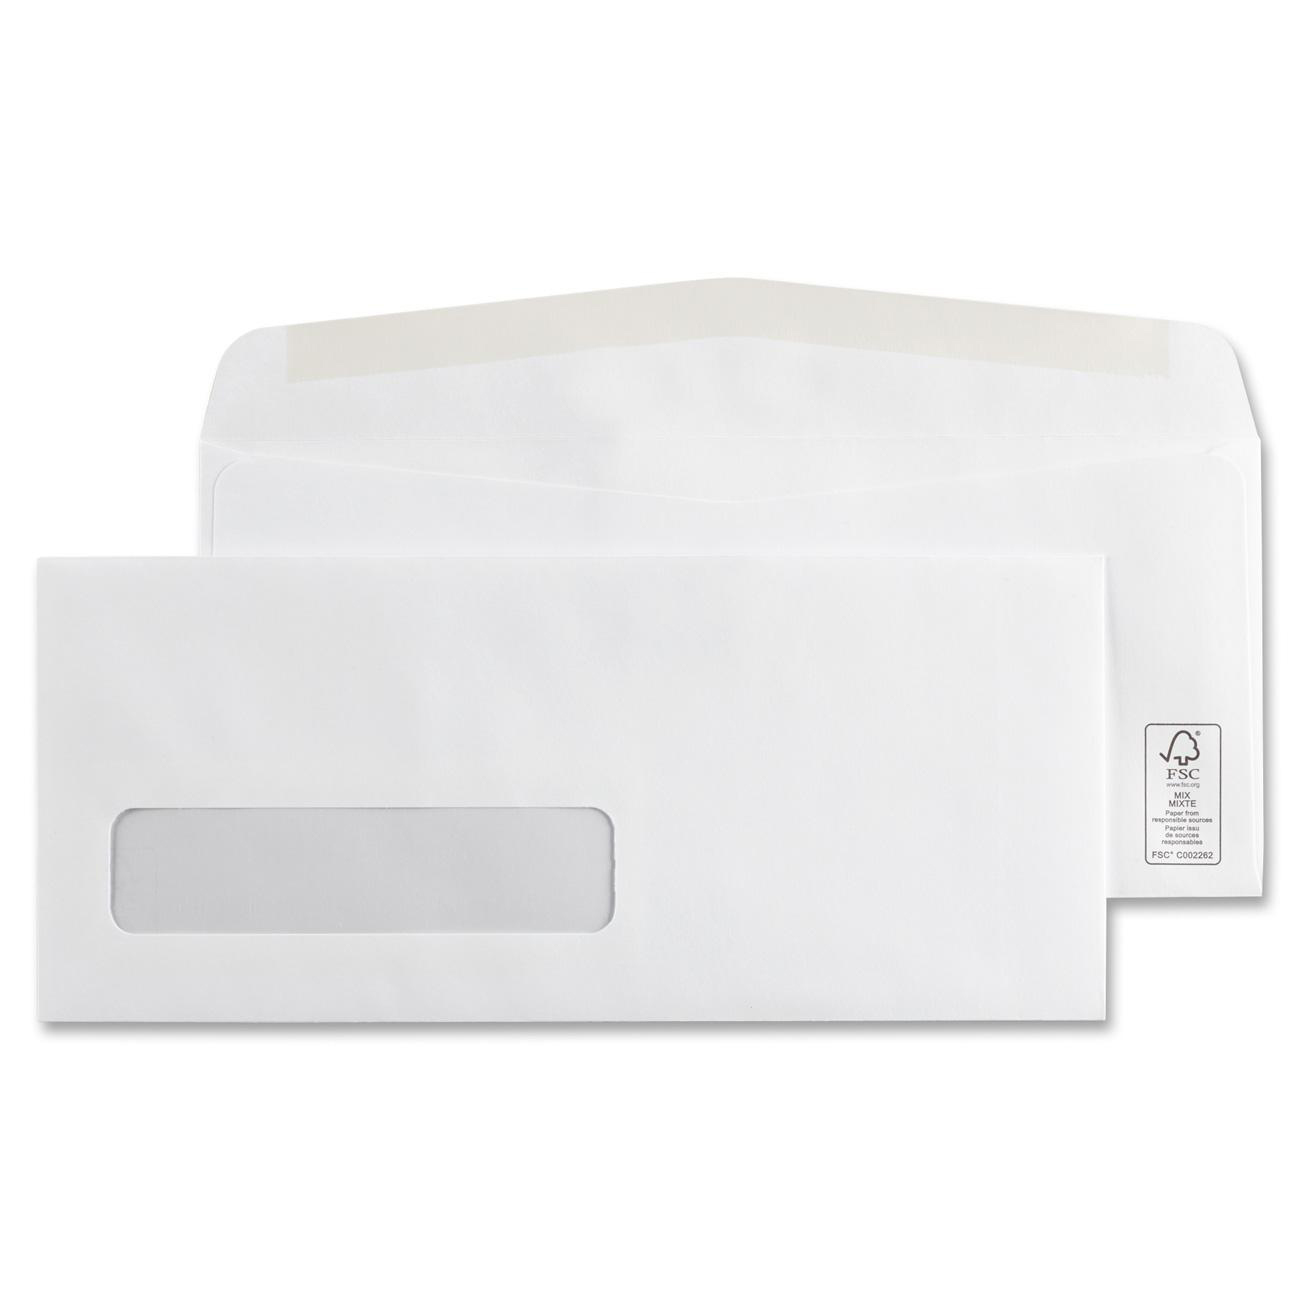 Supremex envelope madill the office company for 10 window envelope